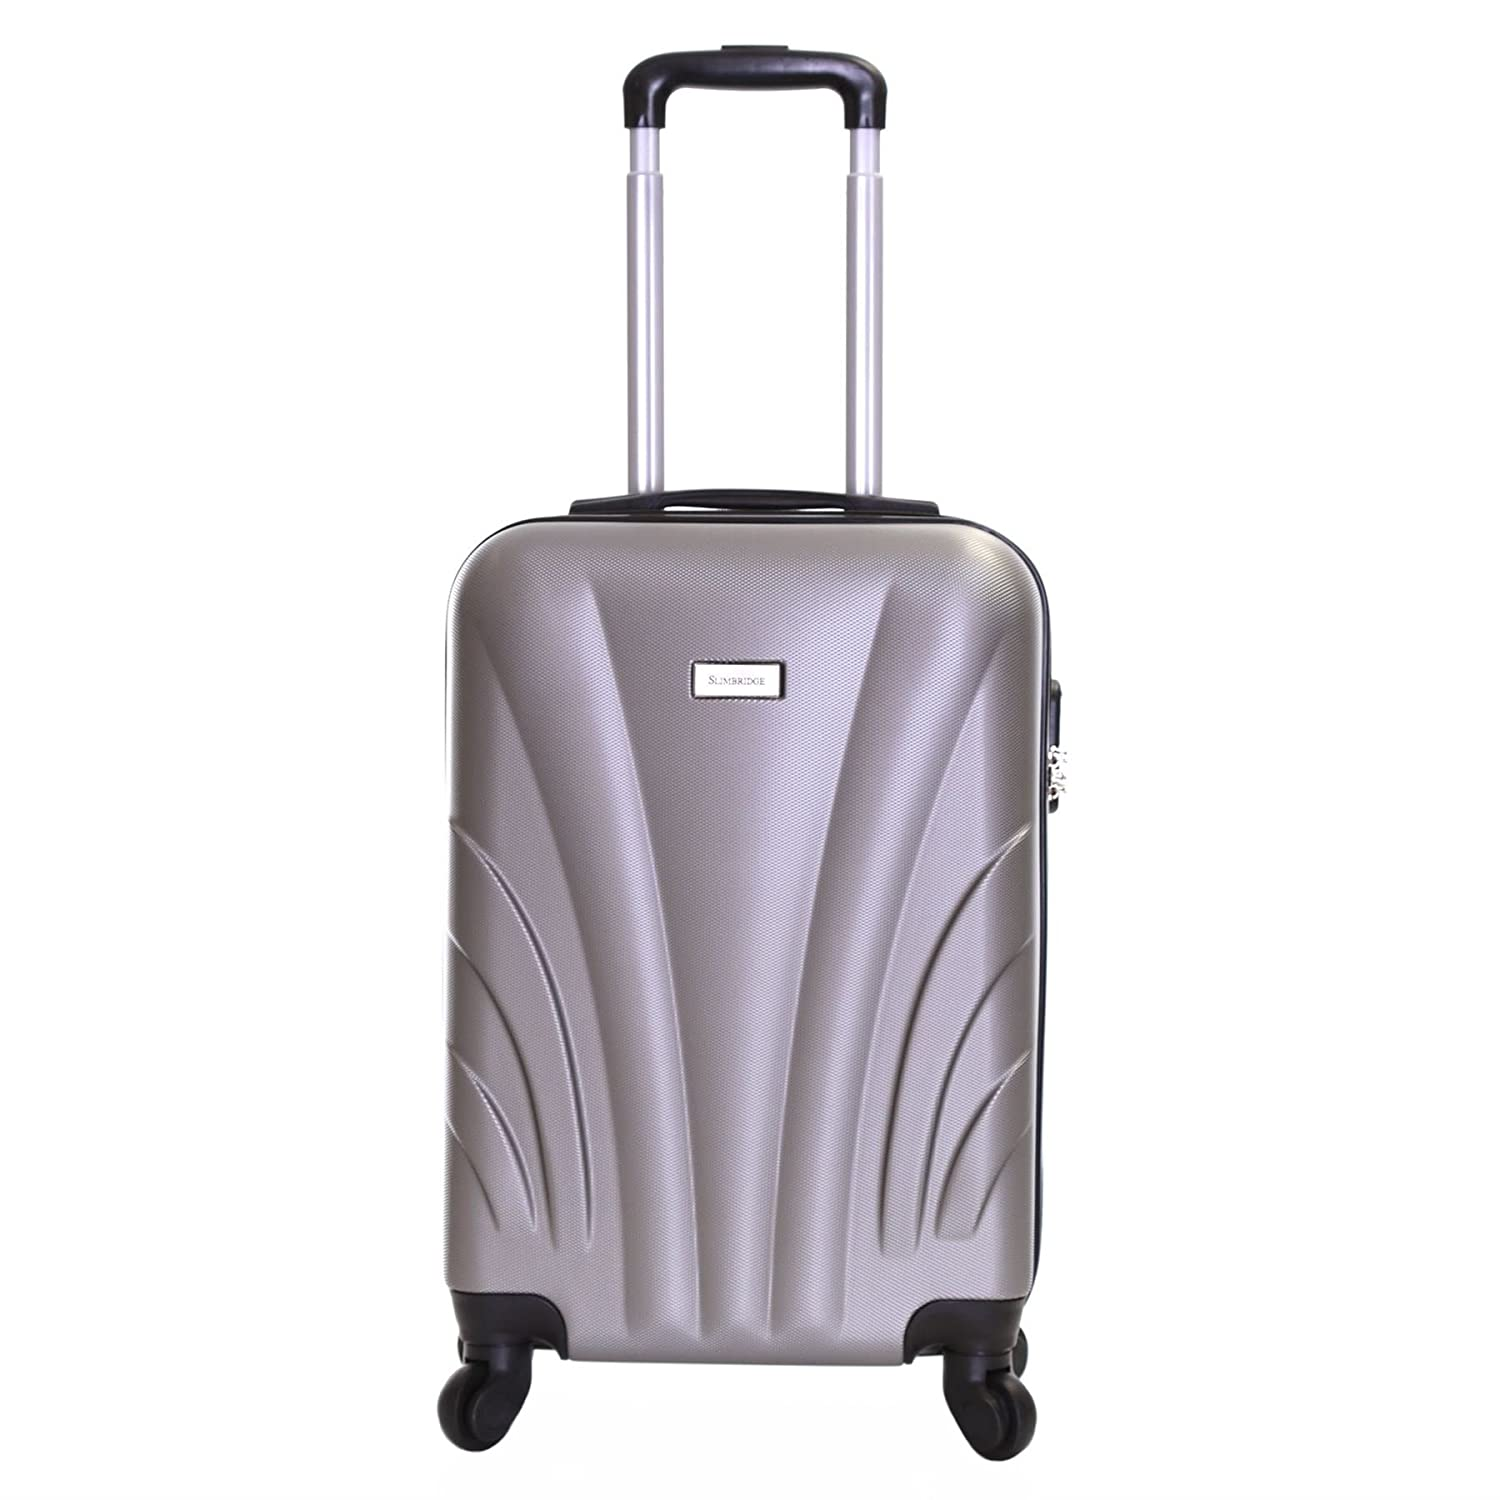 Slimbridge Ferro Super Lightweight ABS Hard Shell Travel Cabin Carry On Hand Luggage Suitcase with 4 Wheels, Approved for Ryanair, EasyJet, British Airways, Virgin Atlantic, Flybe and More, Black Karabar Ltd